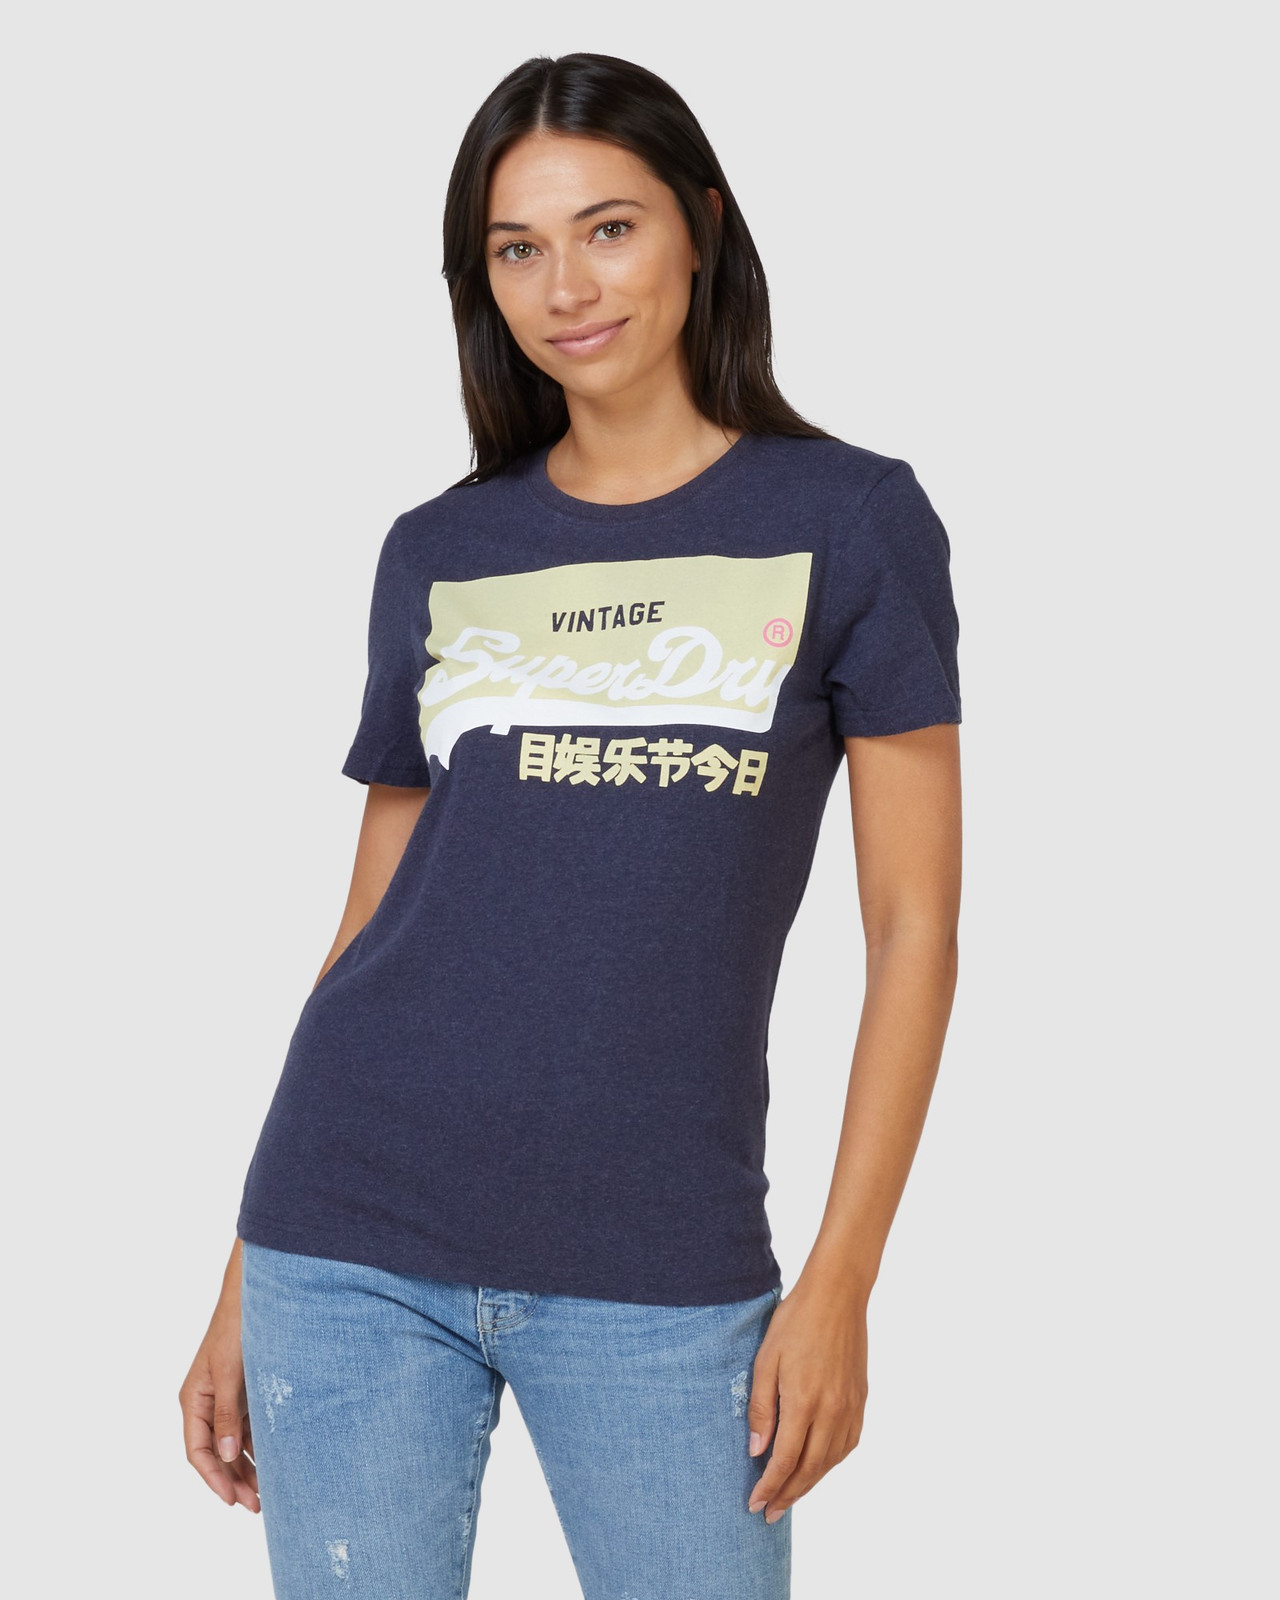 Superdry Womens Vintage Logo Pastel Tee Navy Printed T Shirts 0